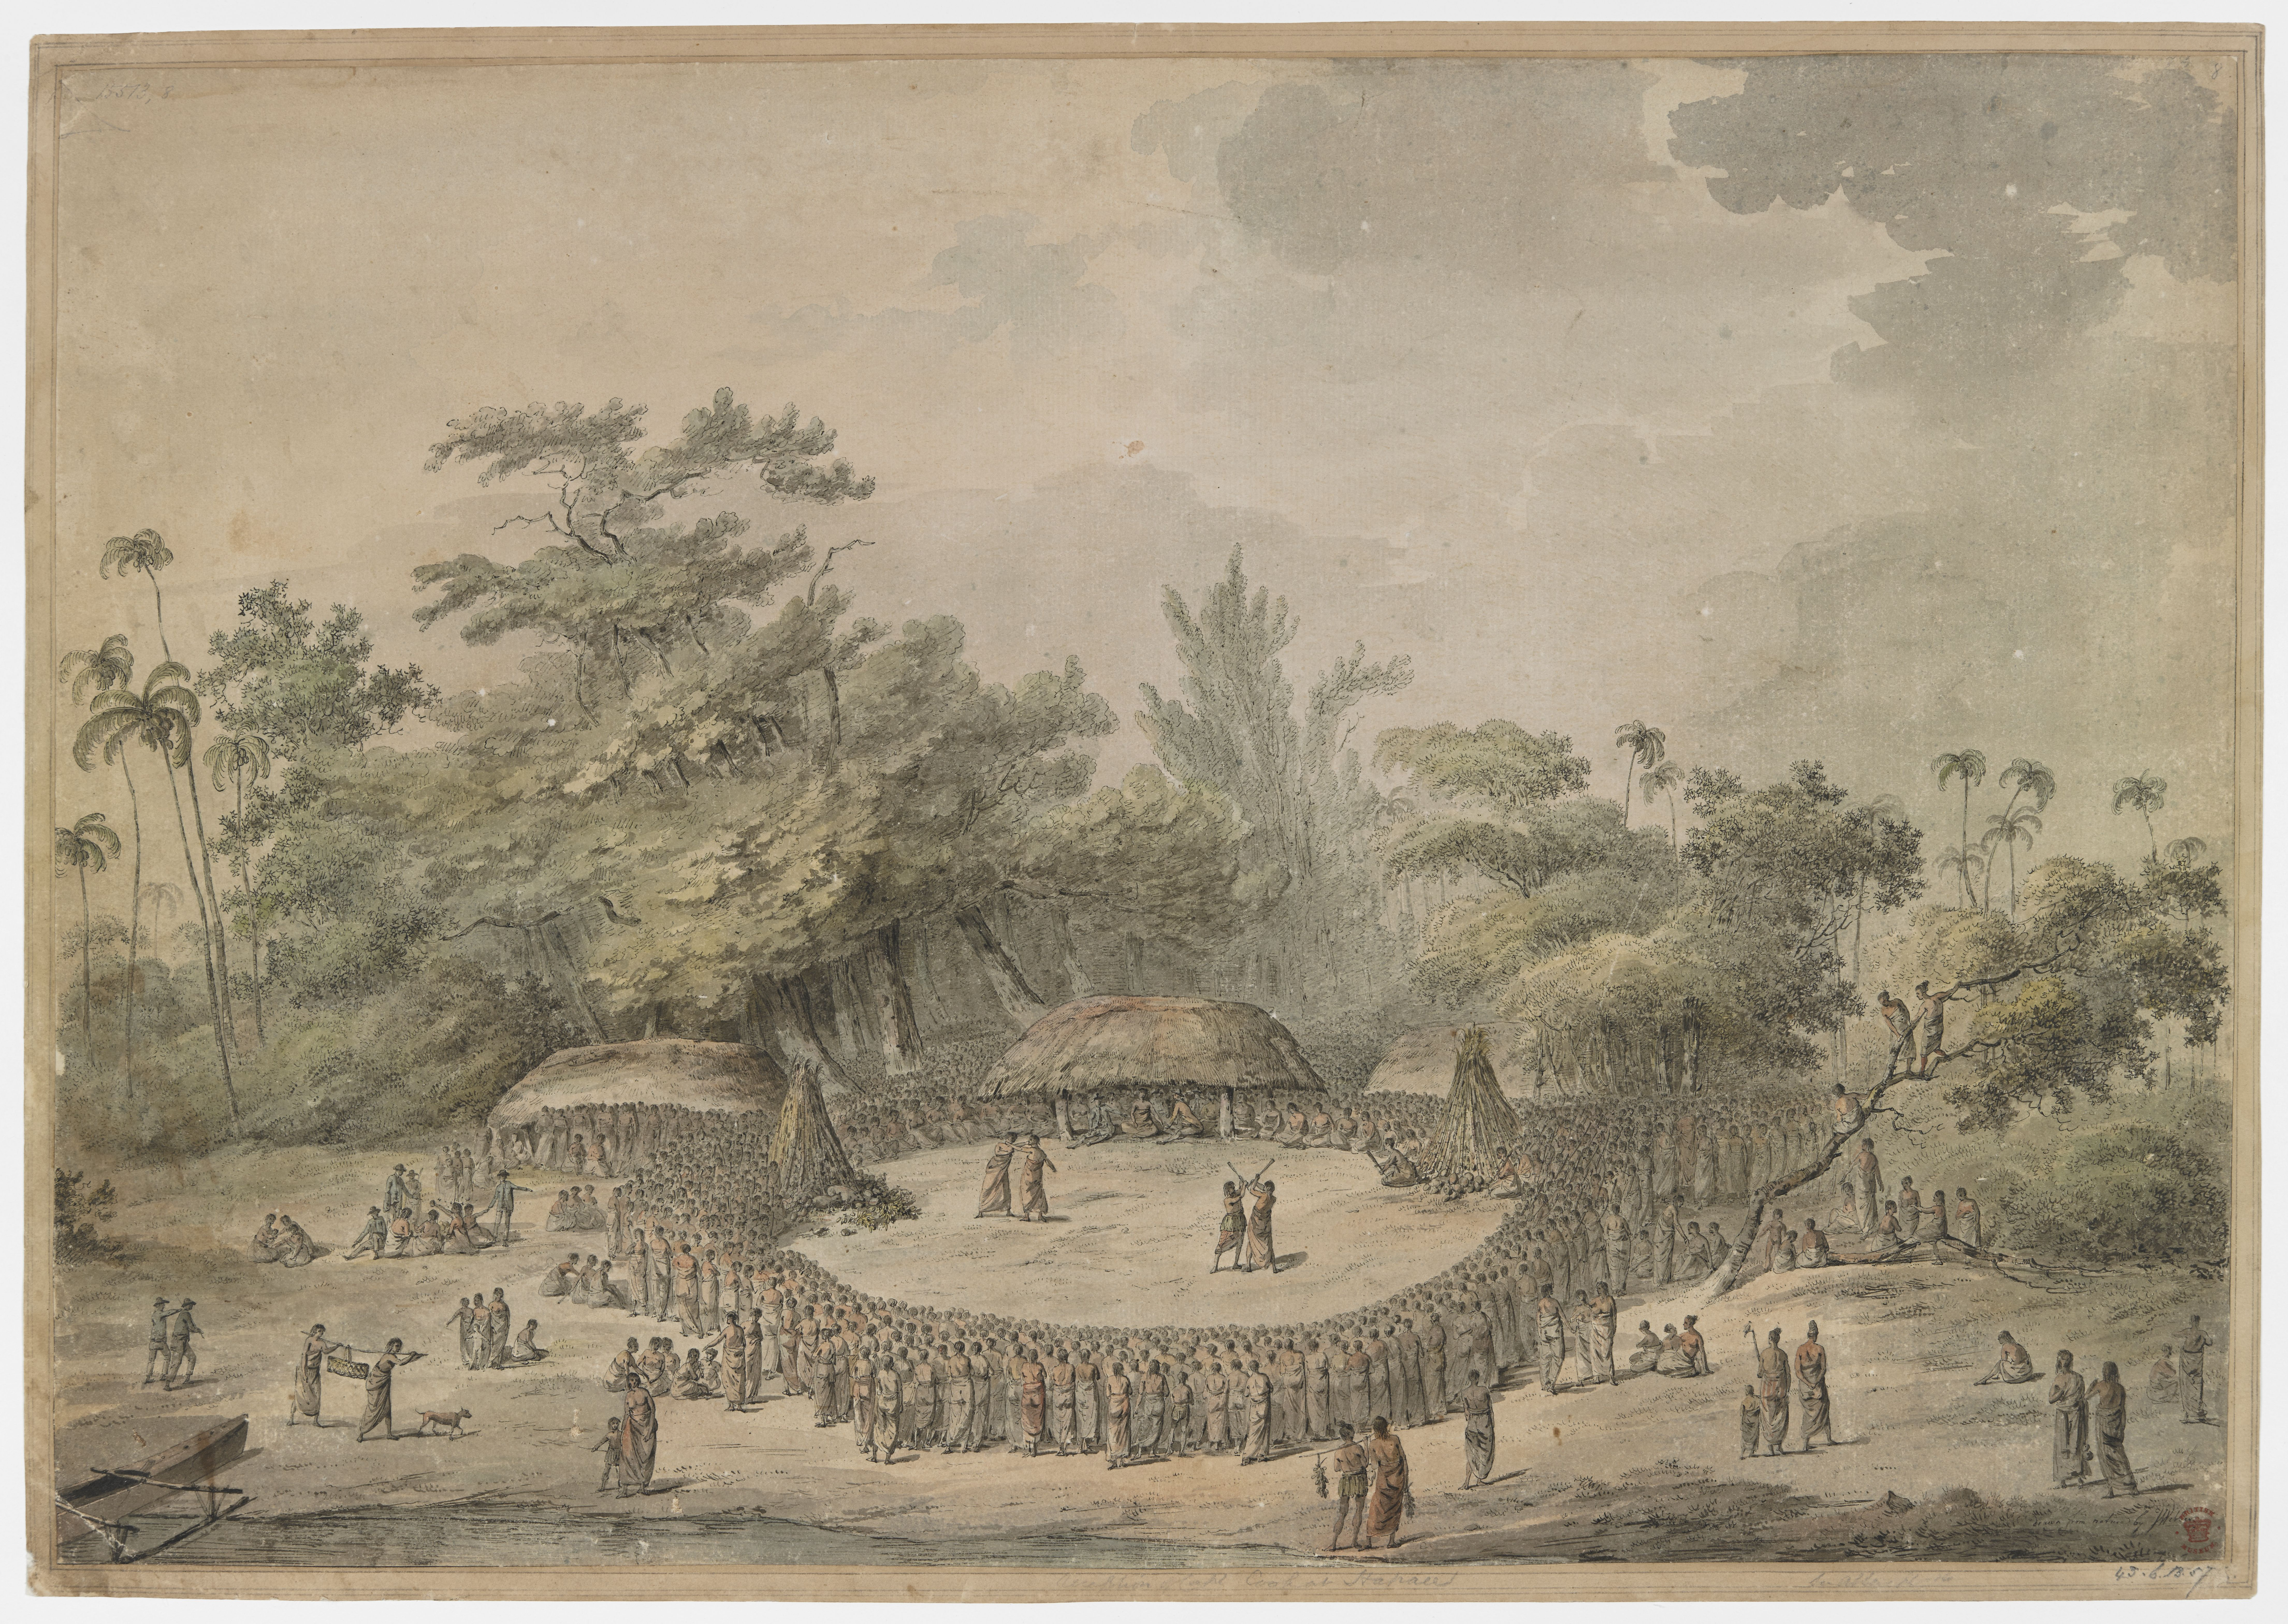 Entertainments at Lifuka on the reception of Captain Cook by John Webber, 1777 (c) British Library Board